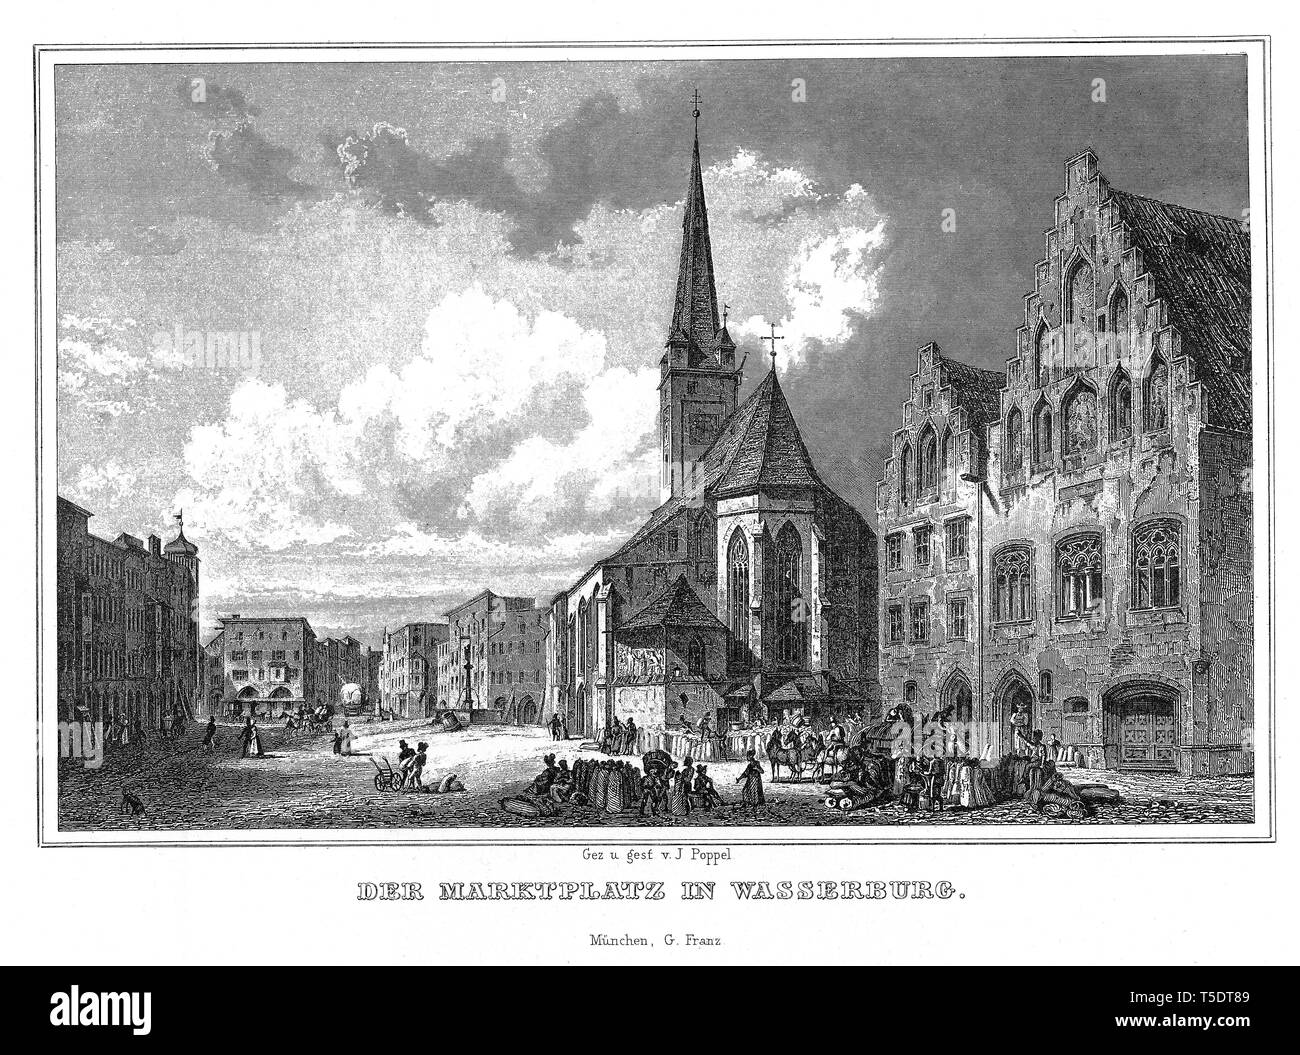 Market square, moated castle near Inn, Steel engraving by J. Poppel, 1840-54, The Kingdom of Bavaria, Germany Stock Photo